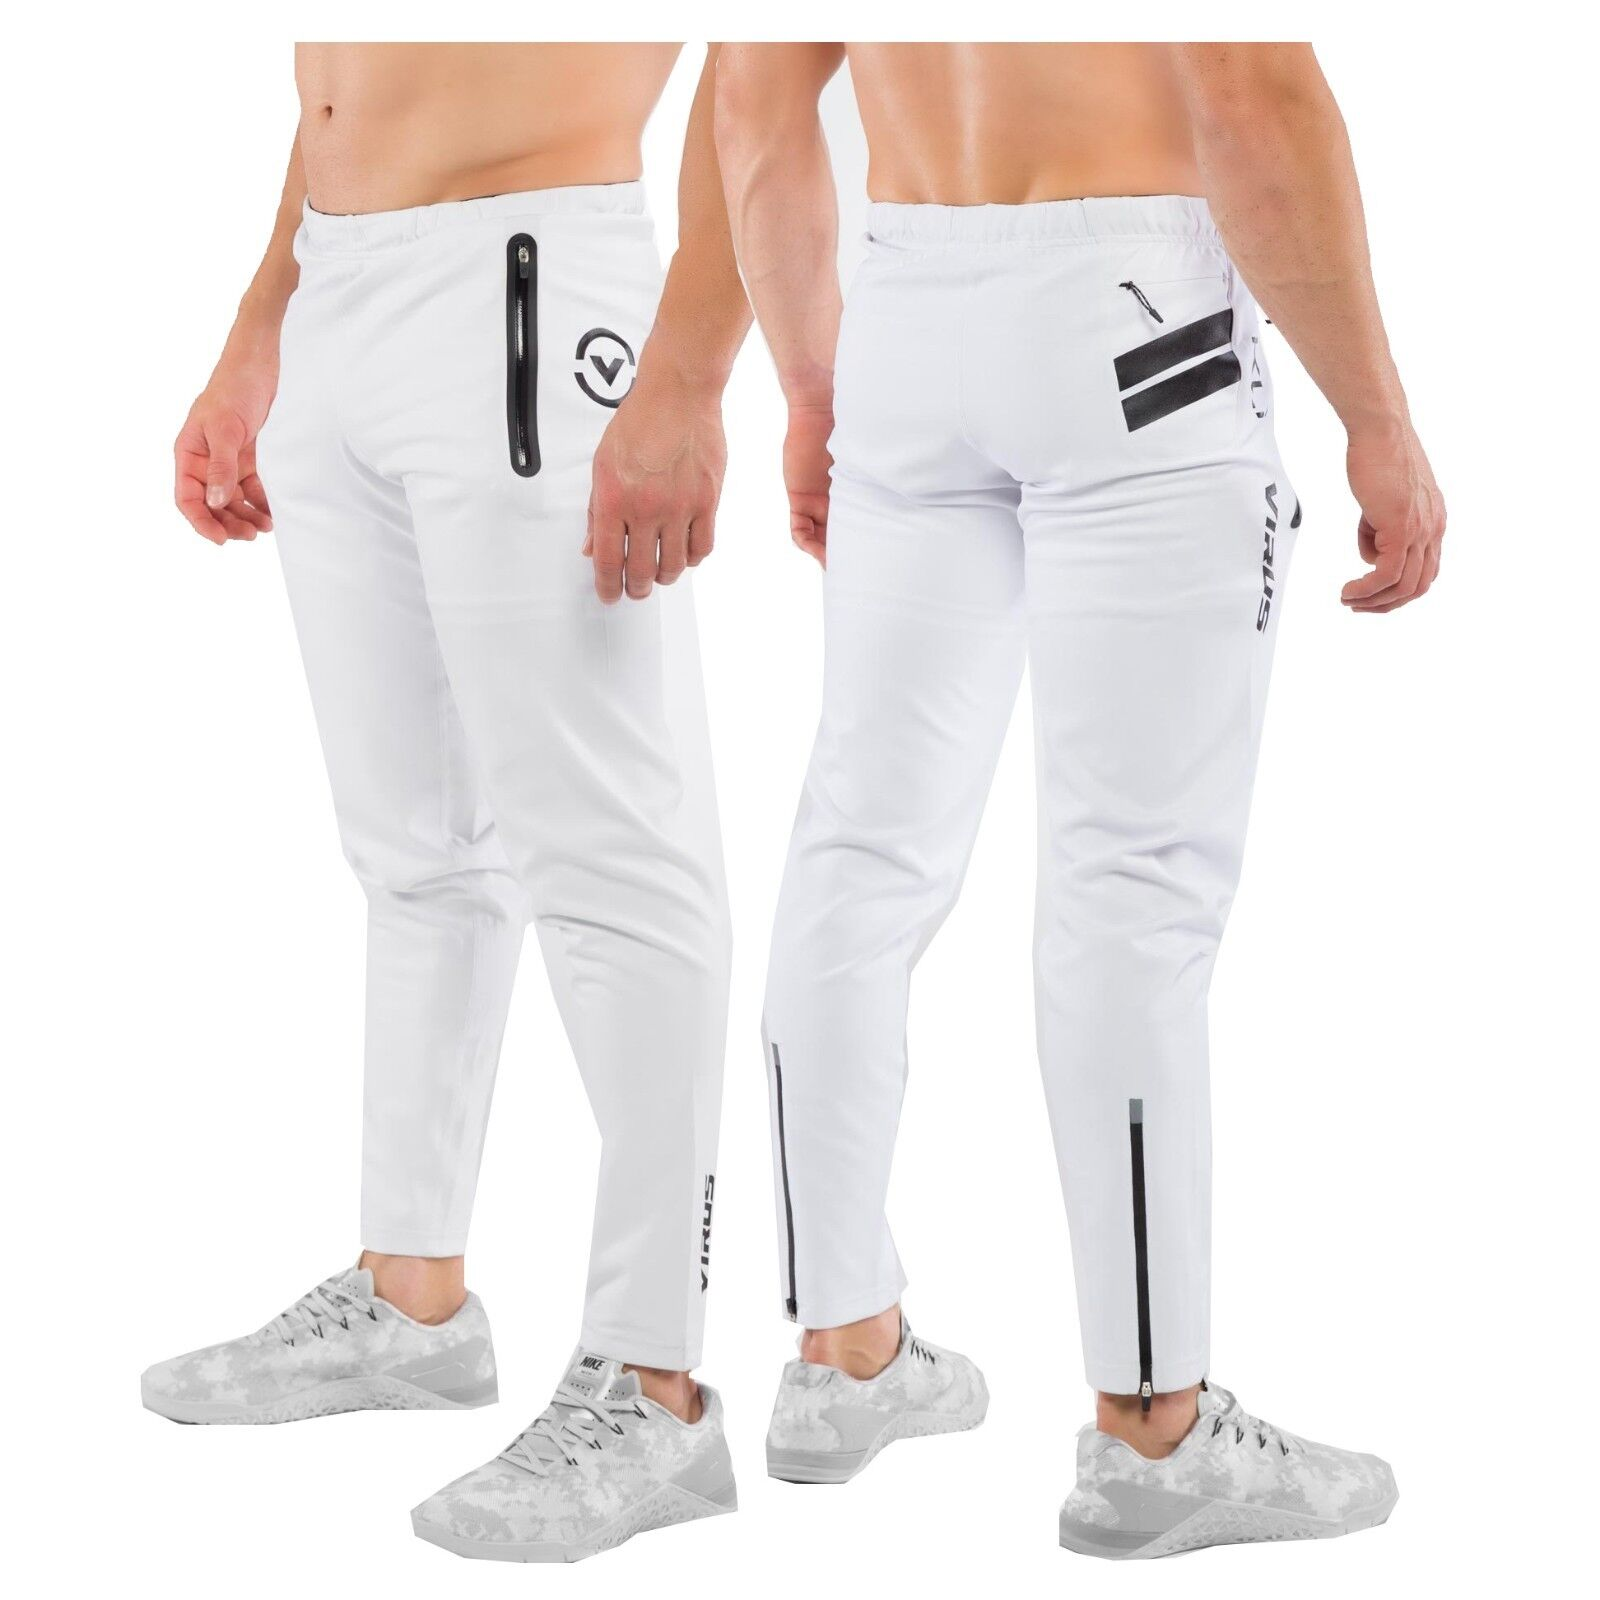 VIRUS Bioceramic KL1 Active Recovery Pants Unisex (Au15) WHITE,Crossfit